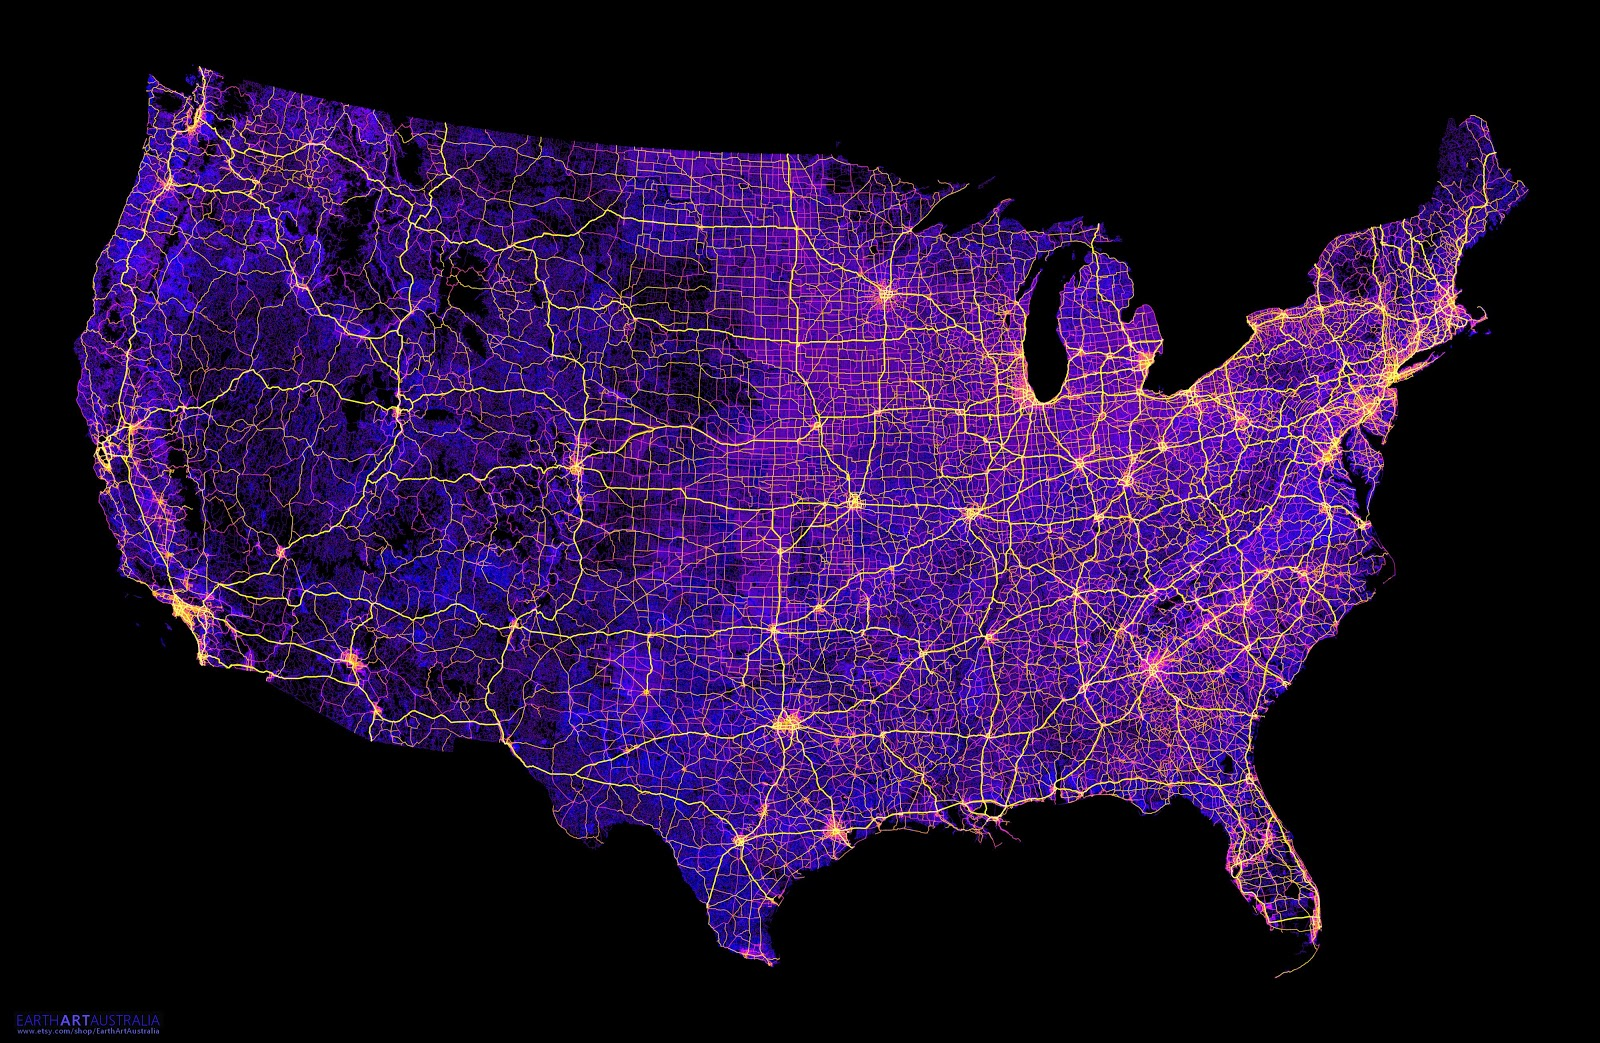 The US mapped only by roads, highways & dirt trails